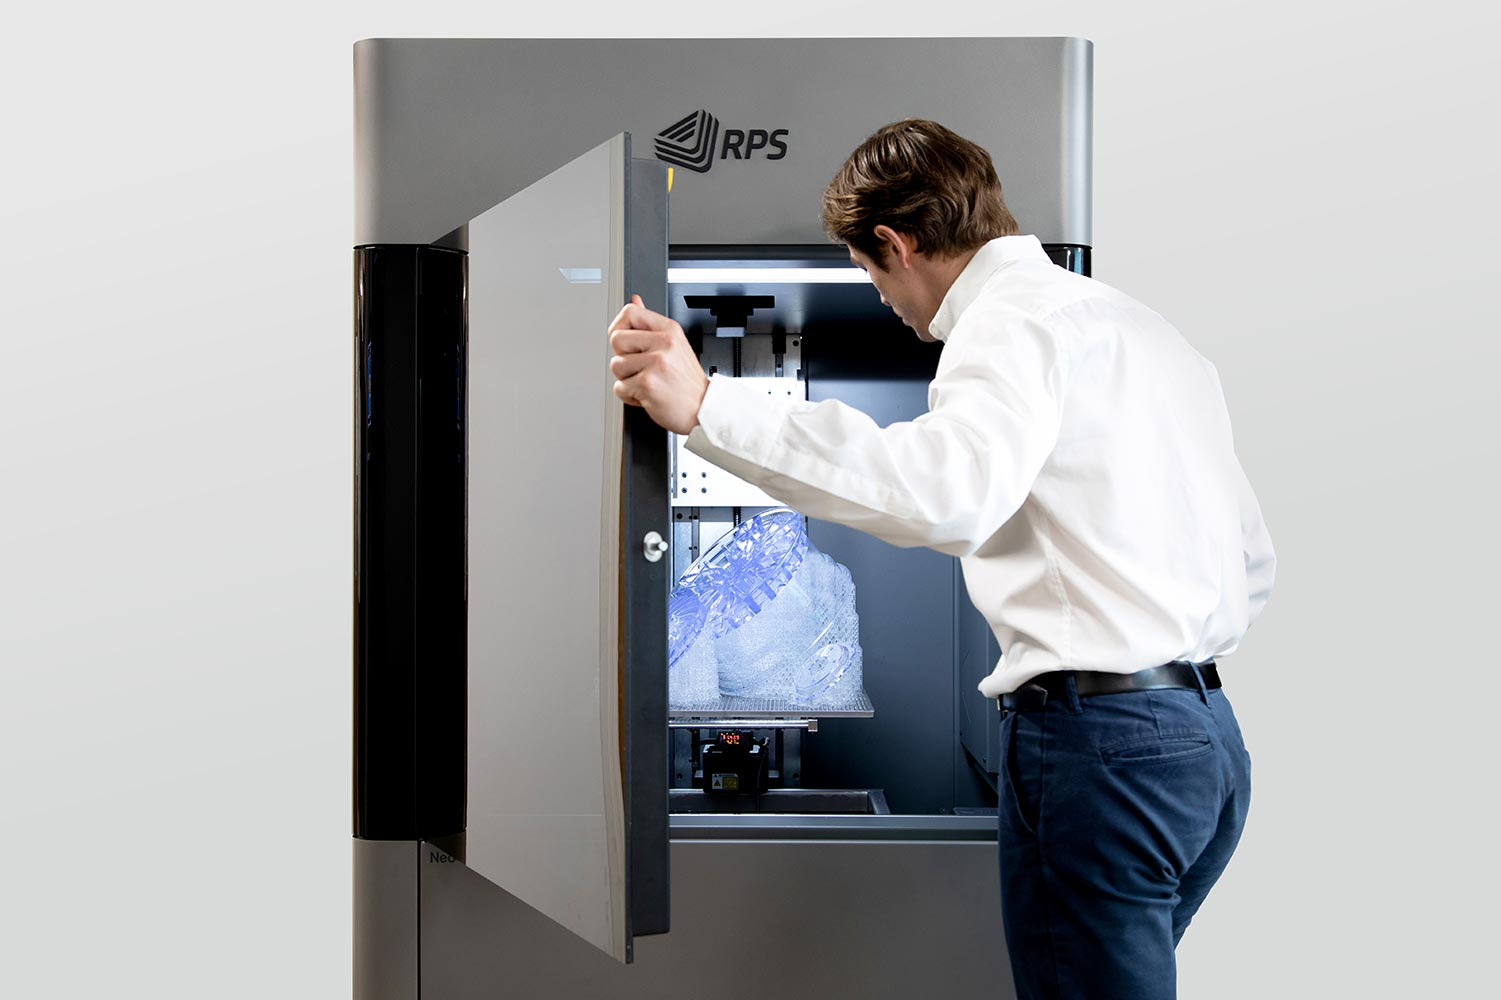 RPS expands Neo stereolithography 3D printer range with the Neo®450 series, for industrial production